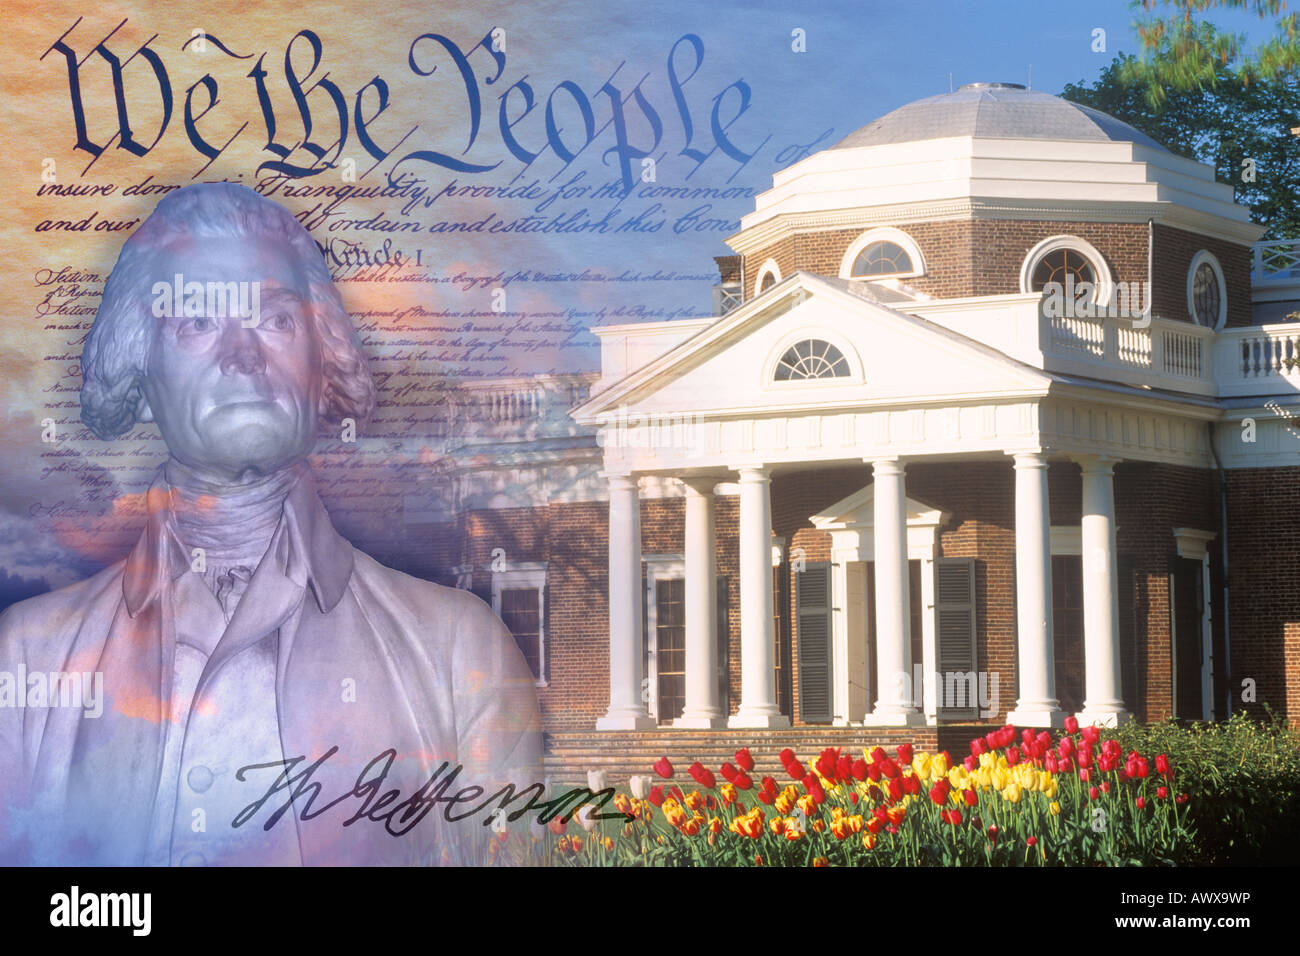 Composite image of Monticello, US Constitution, and bust of Thomas Jefferson with his signature - Stock Image